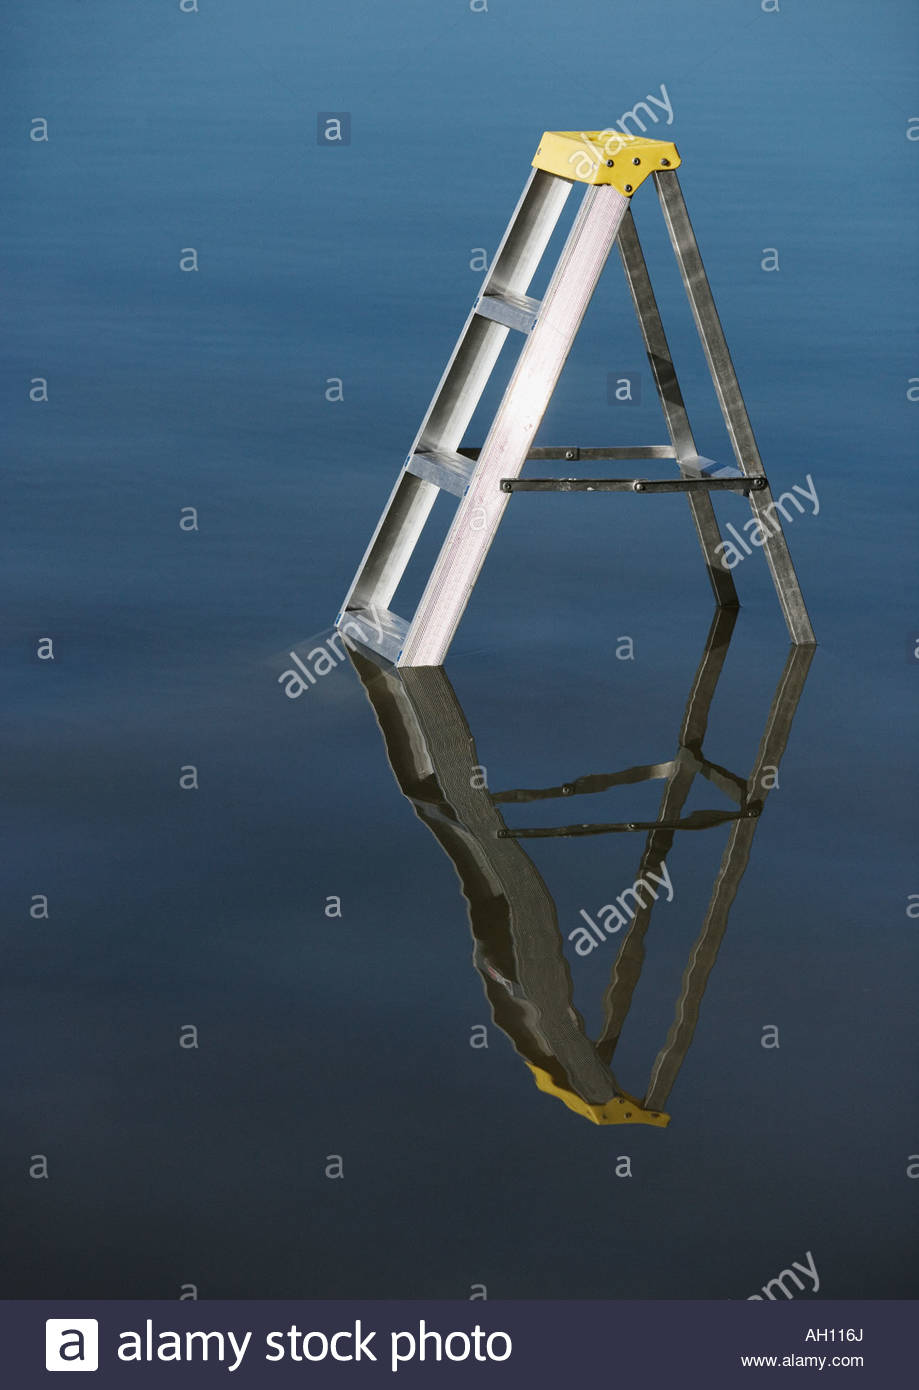 A ladder submerged in the water - Stock Image